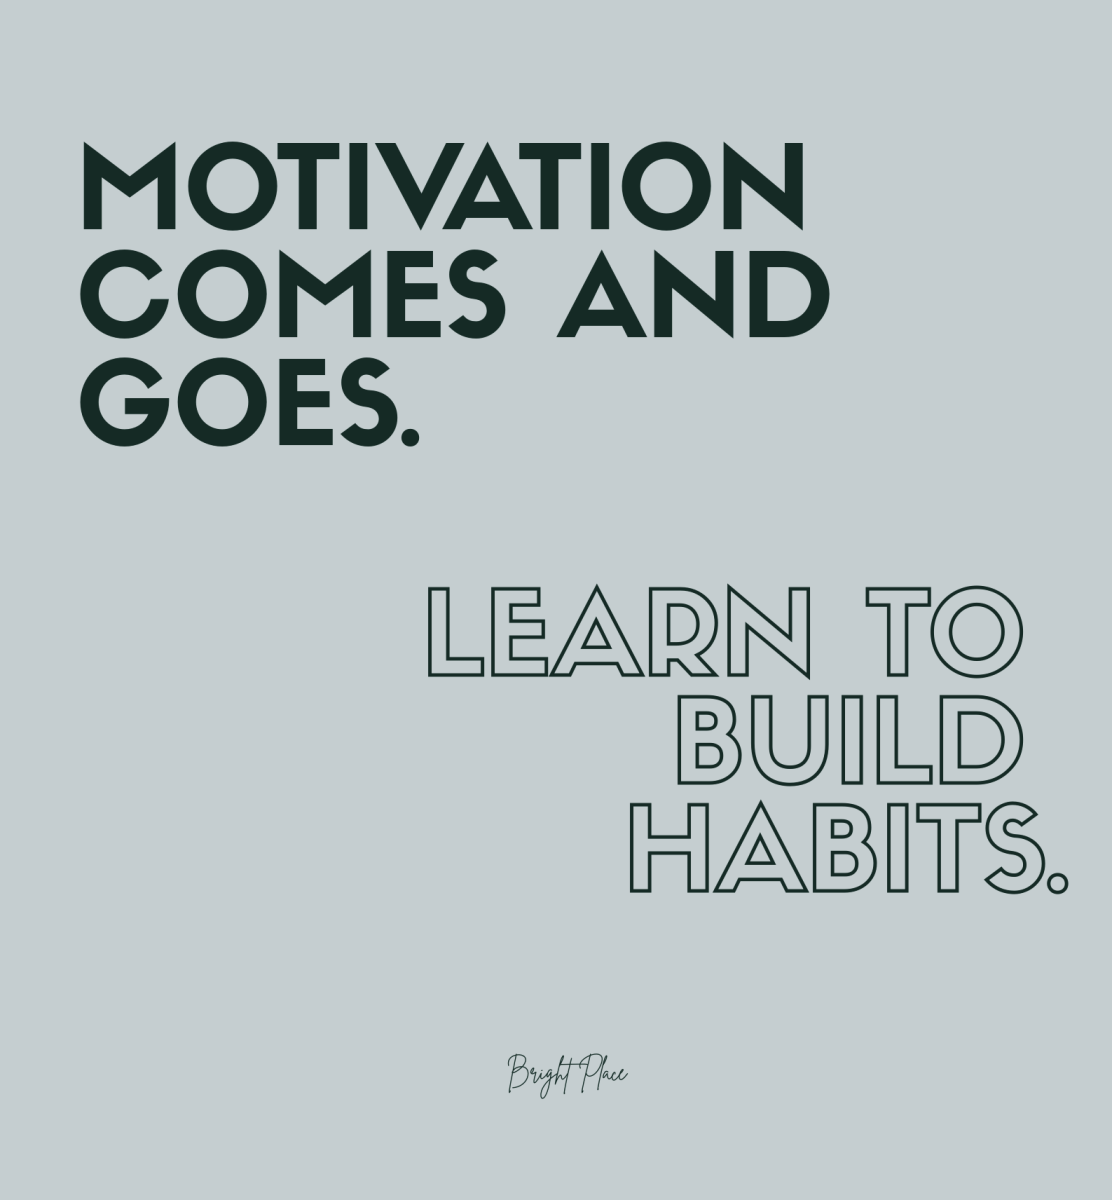 Workout Motivation Quotes/ Home workout Quotes/ Motivation Quotes/ Motivation comes and goes. Learn to build habits.